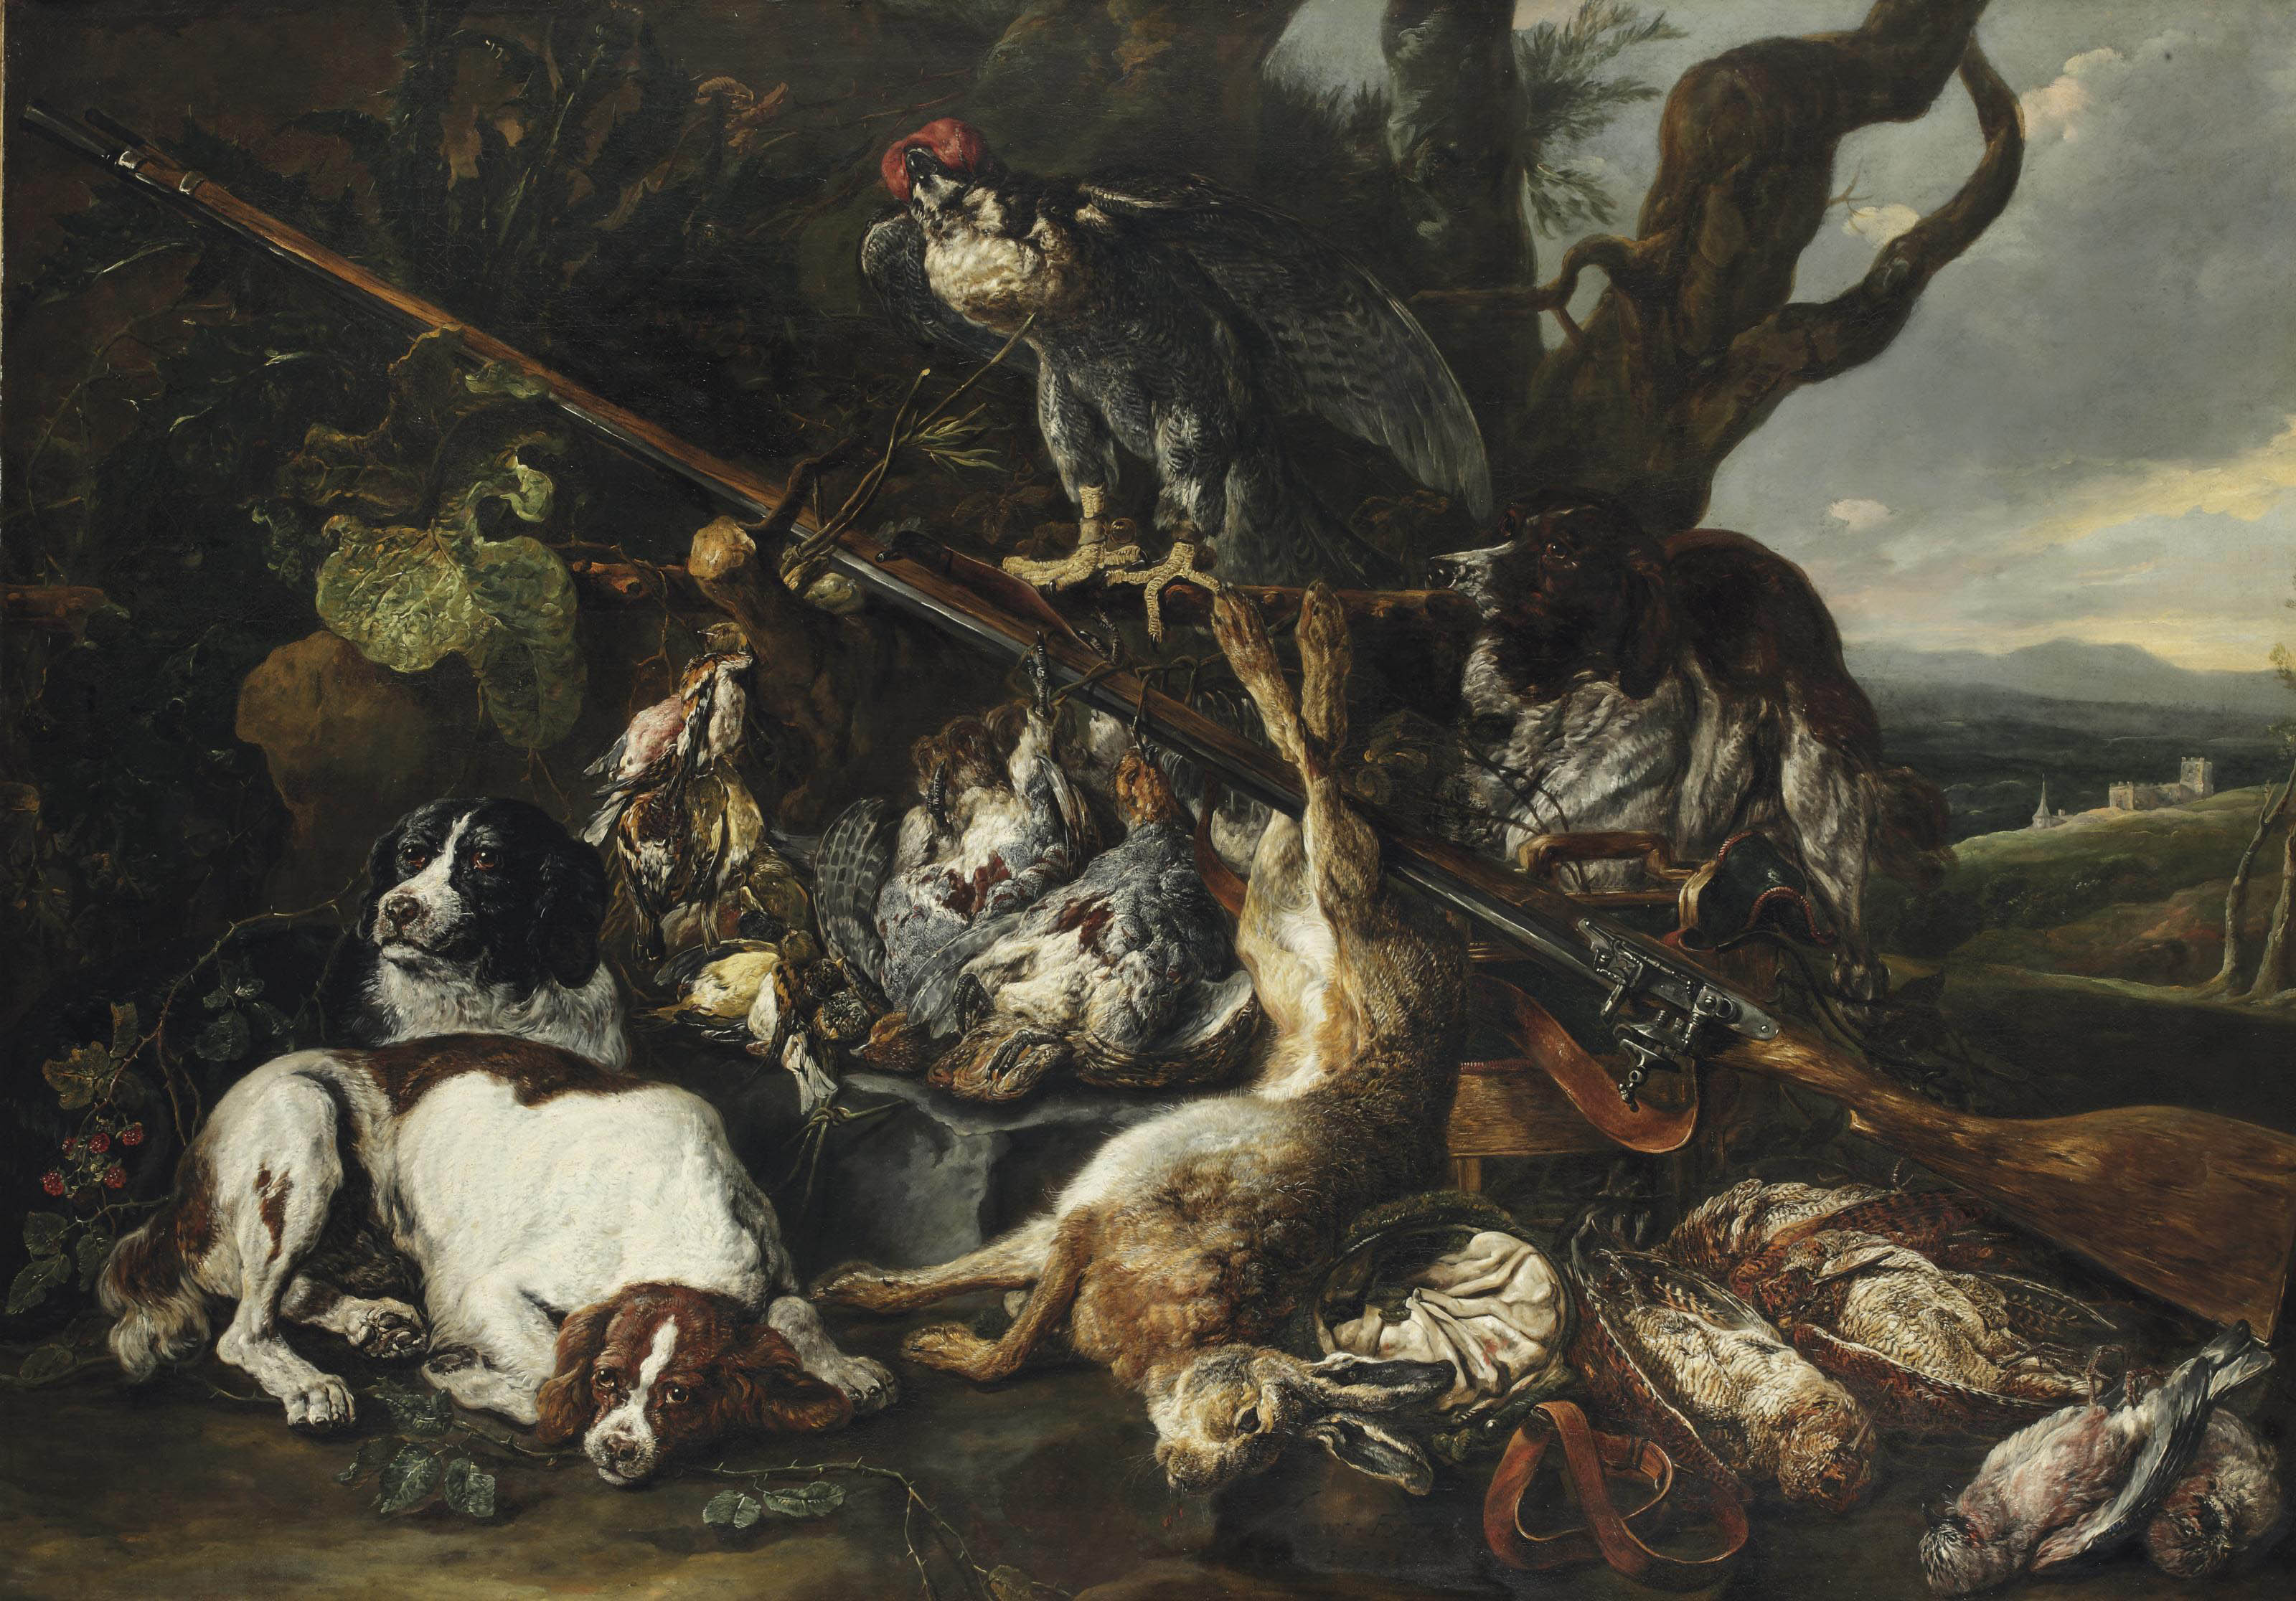 A hunting still life of a hare, partridges, snipes and other birds, together with three spaniels, a hooded falcon, a rifle and a game-bag and belt in a hilly landscape